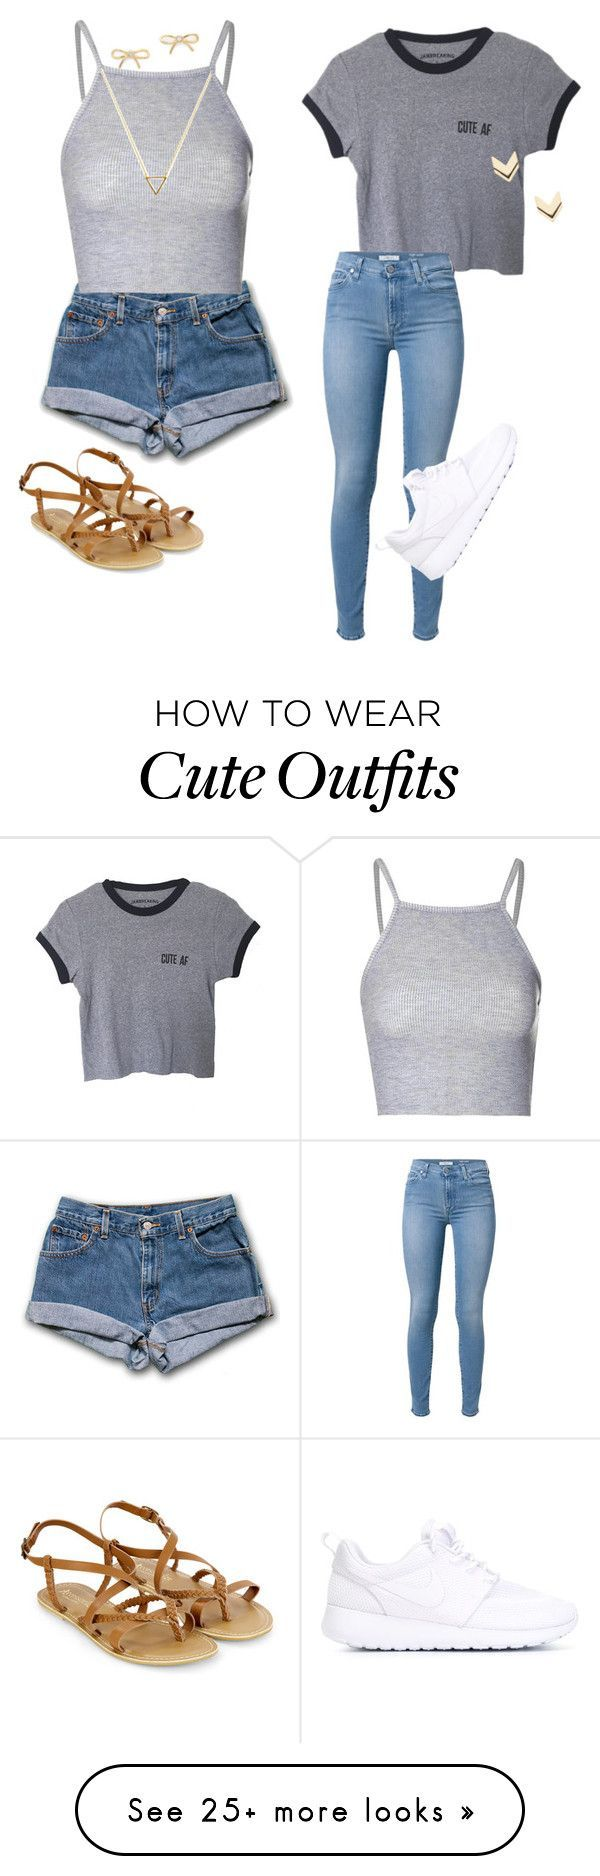 """""""Monday&tuesdays outfit!"""" by superwomennicky on Polyvore featuring Accessorize, ..."""